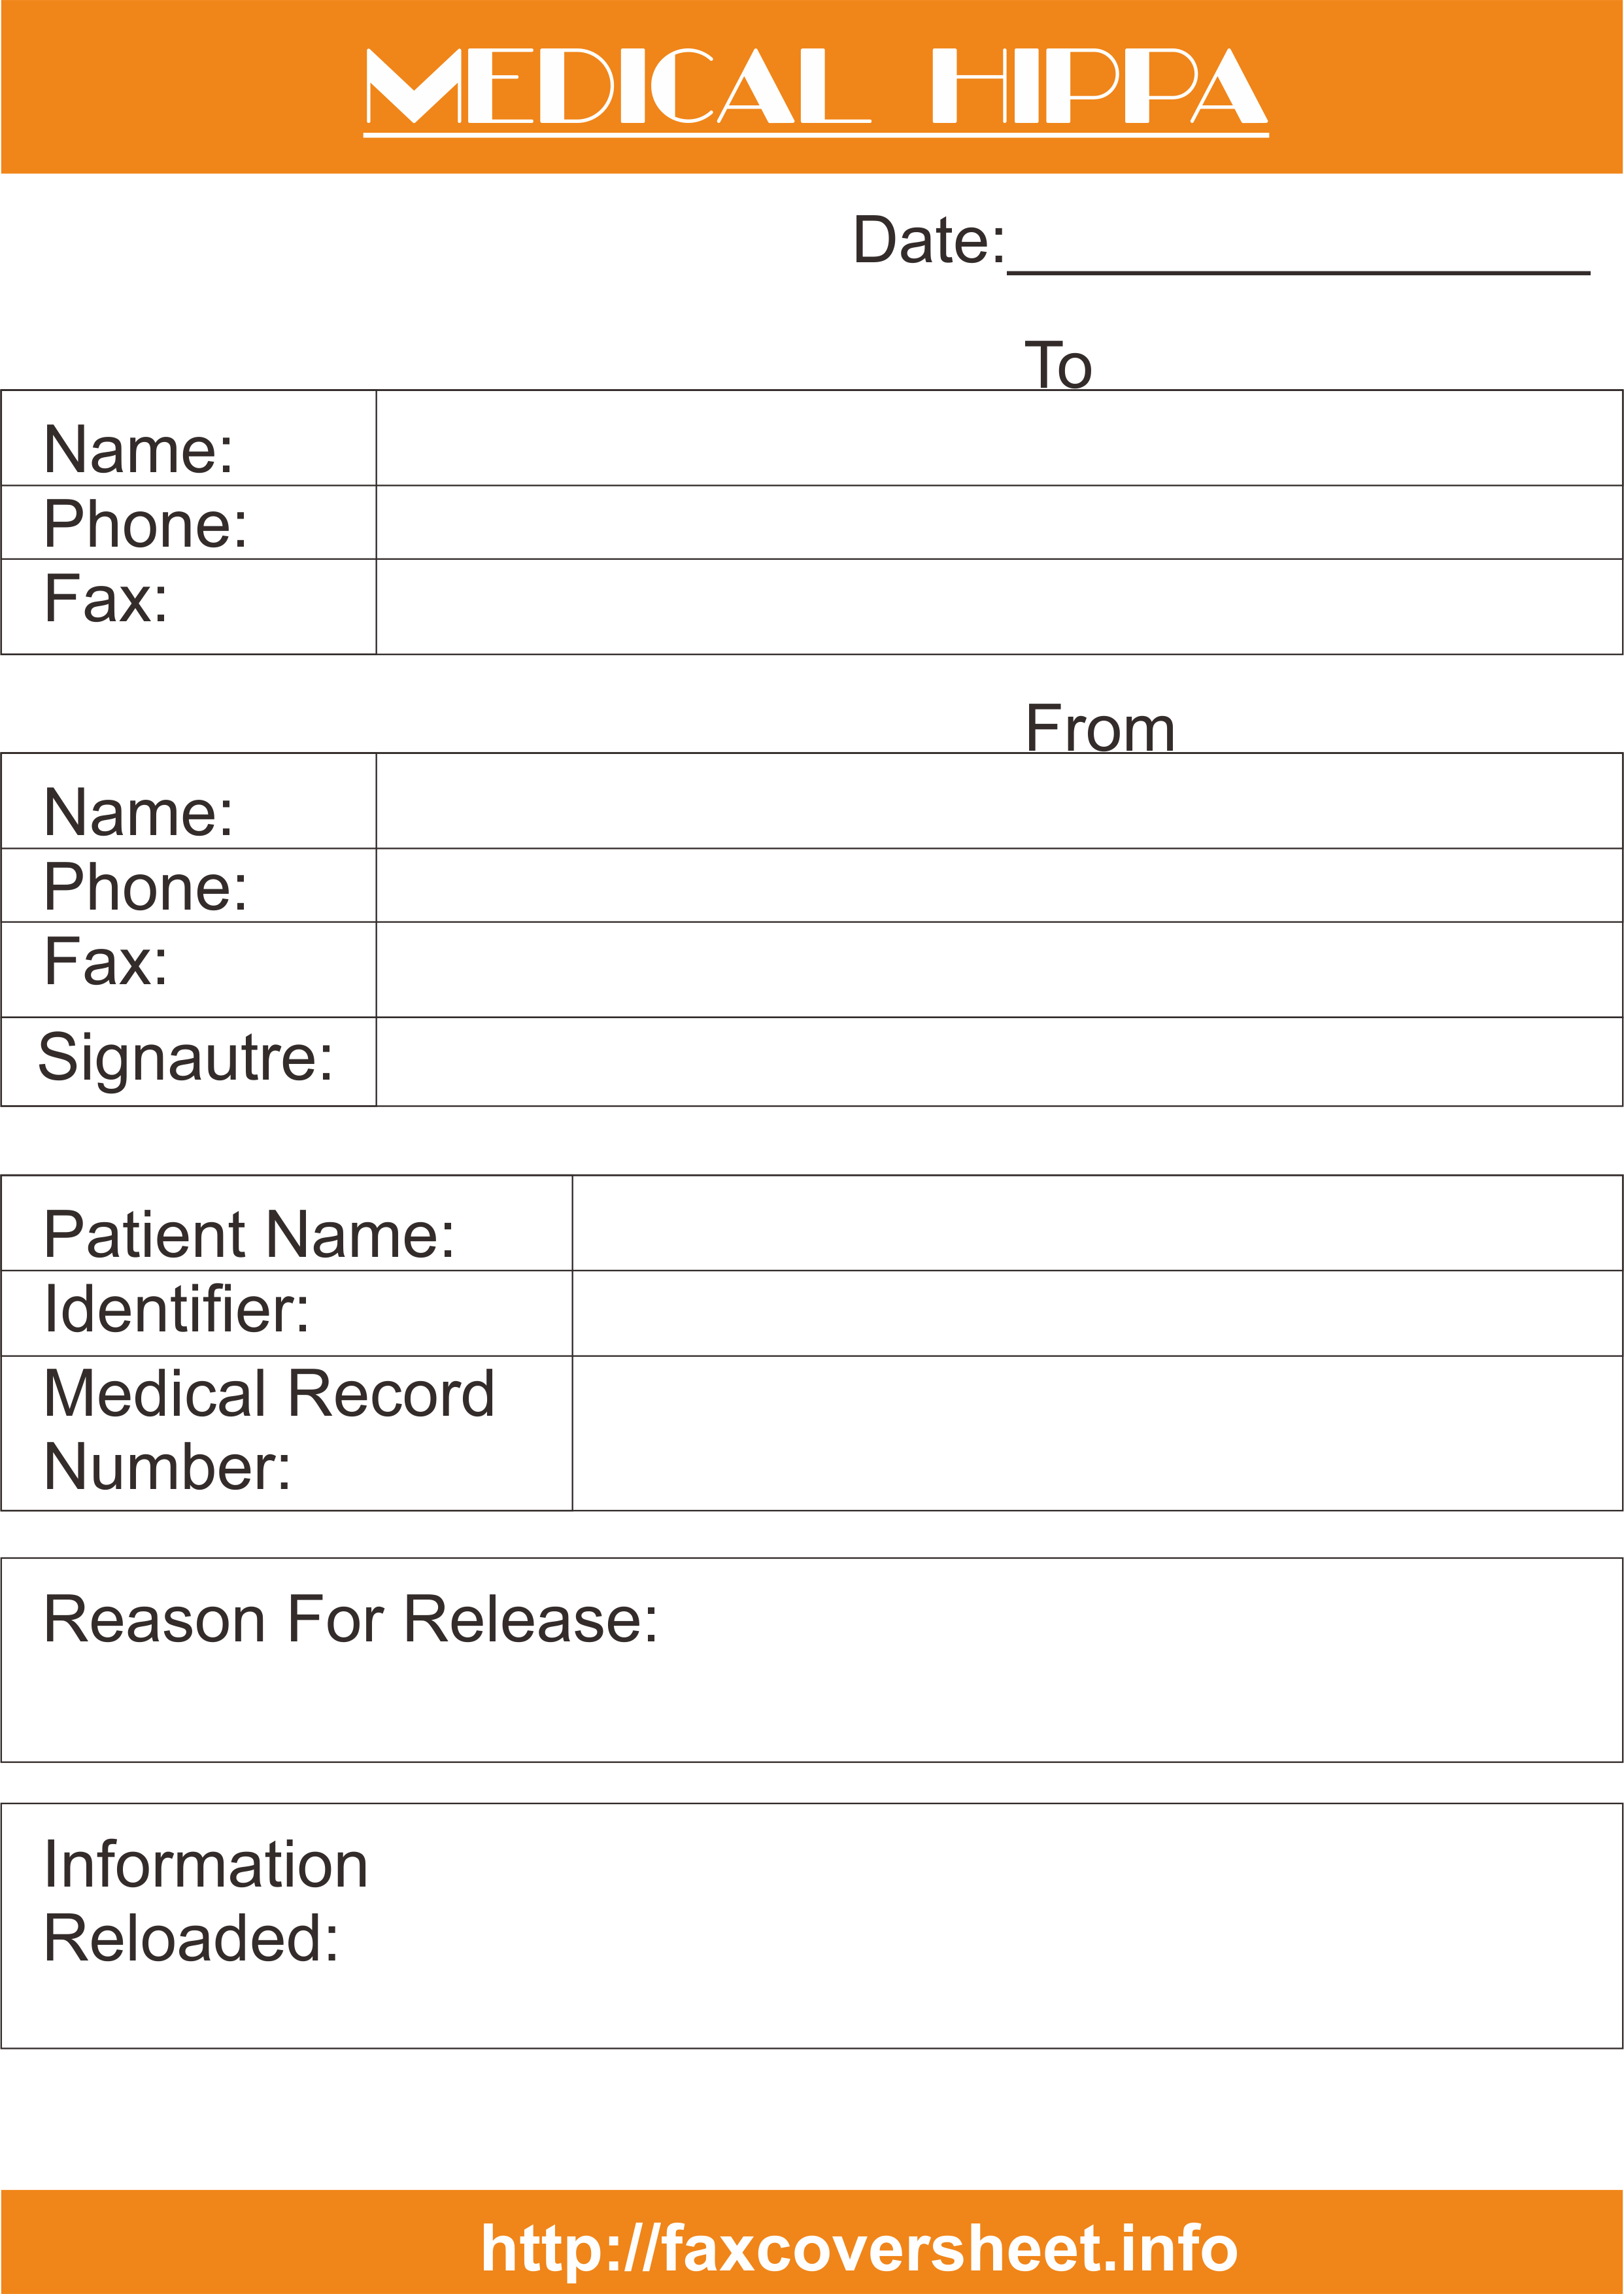 Free Medical HIPAA Fax Cover Sheet